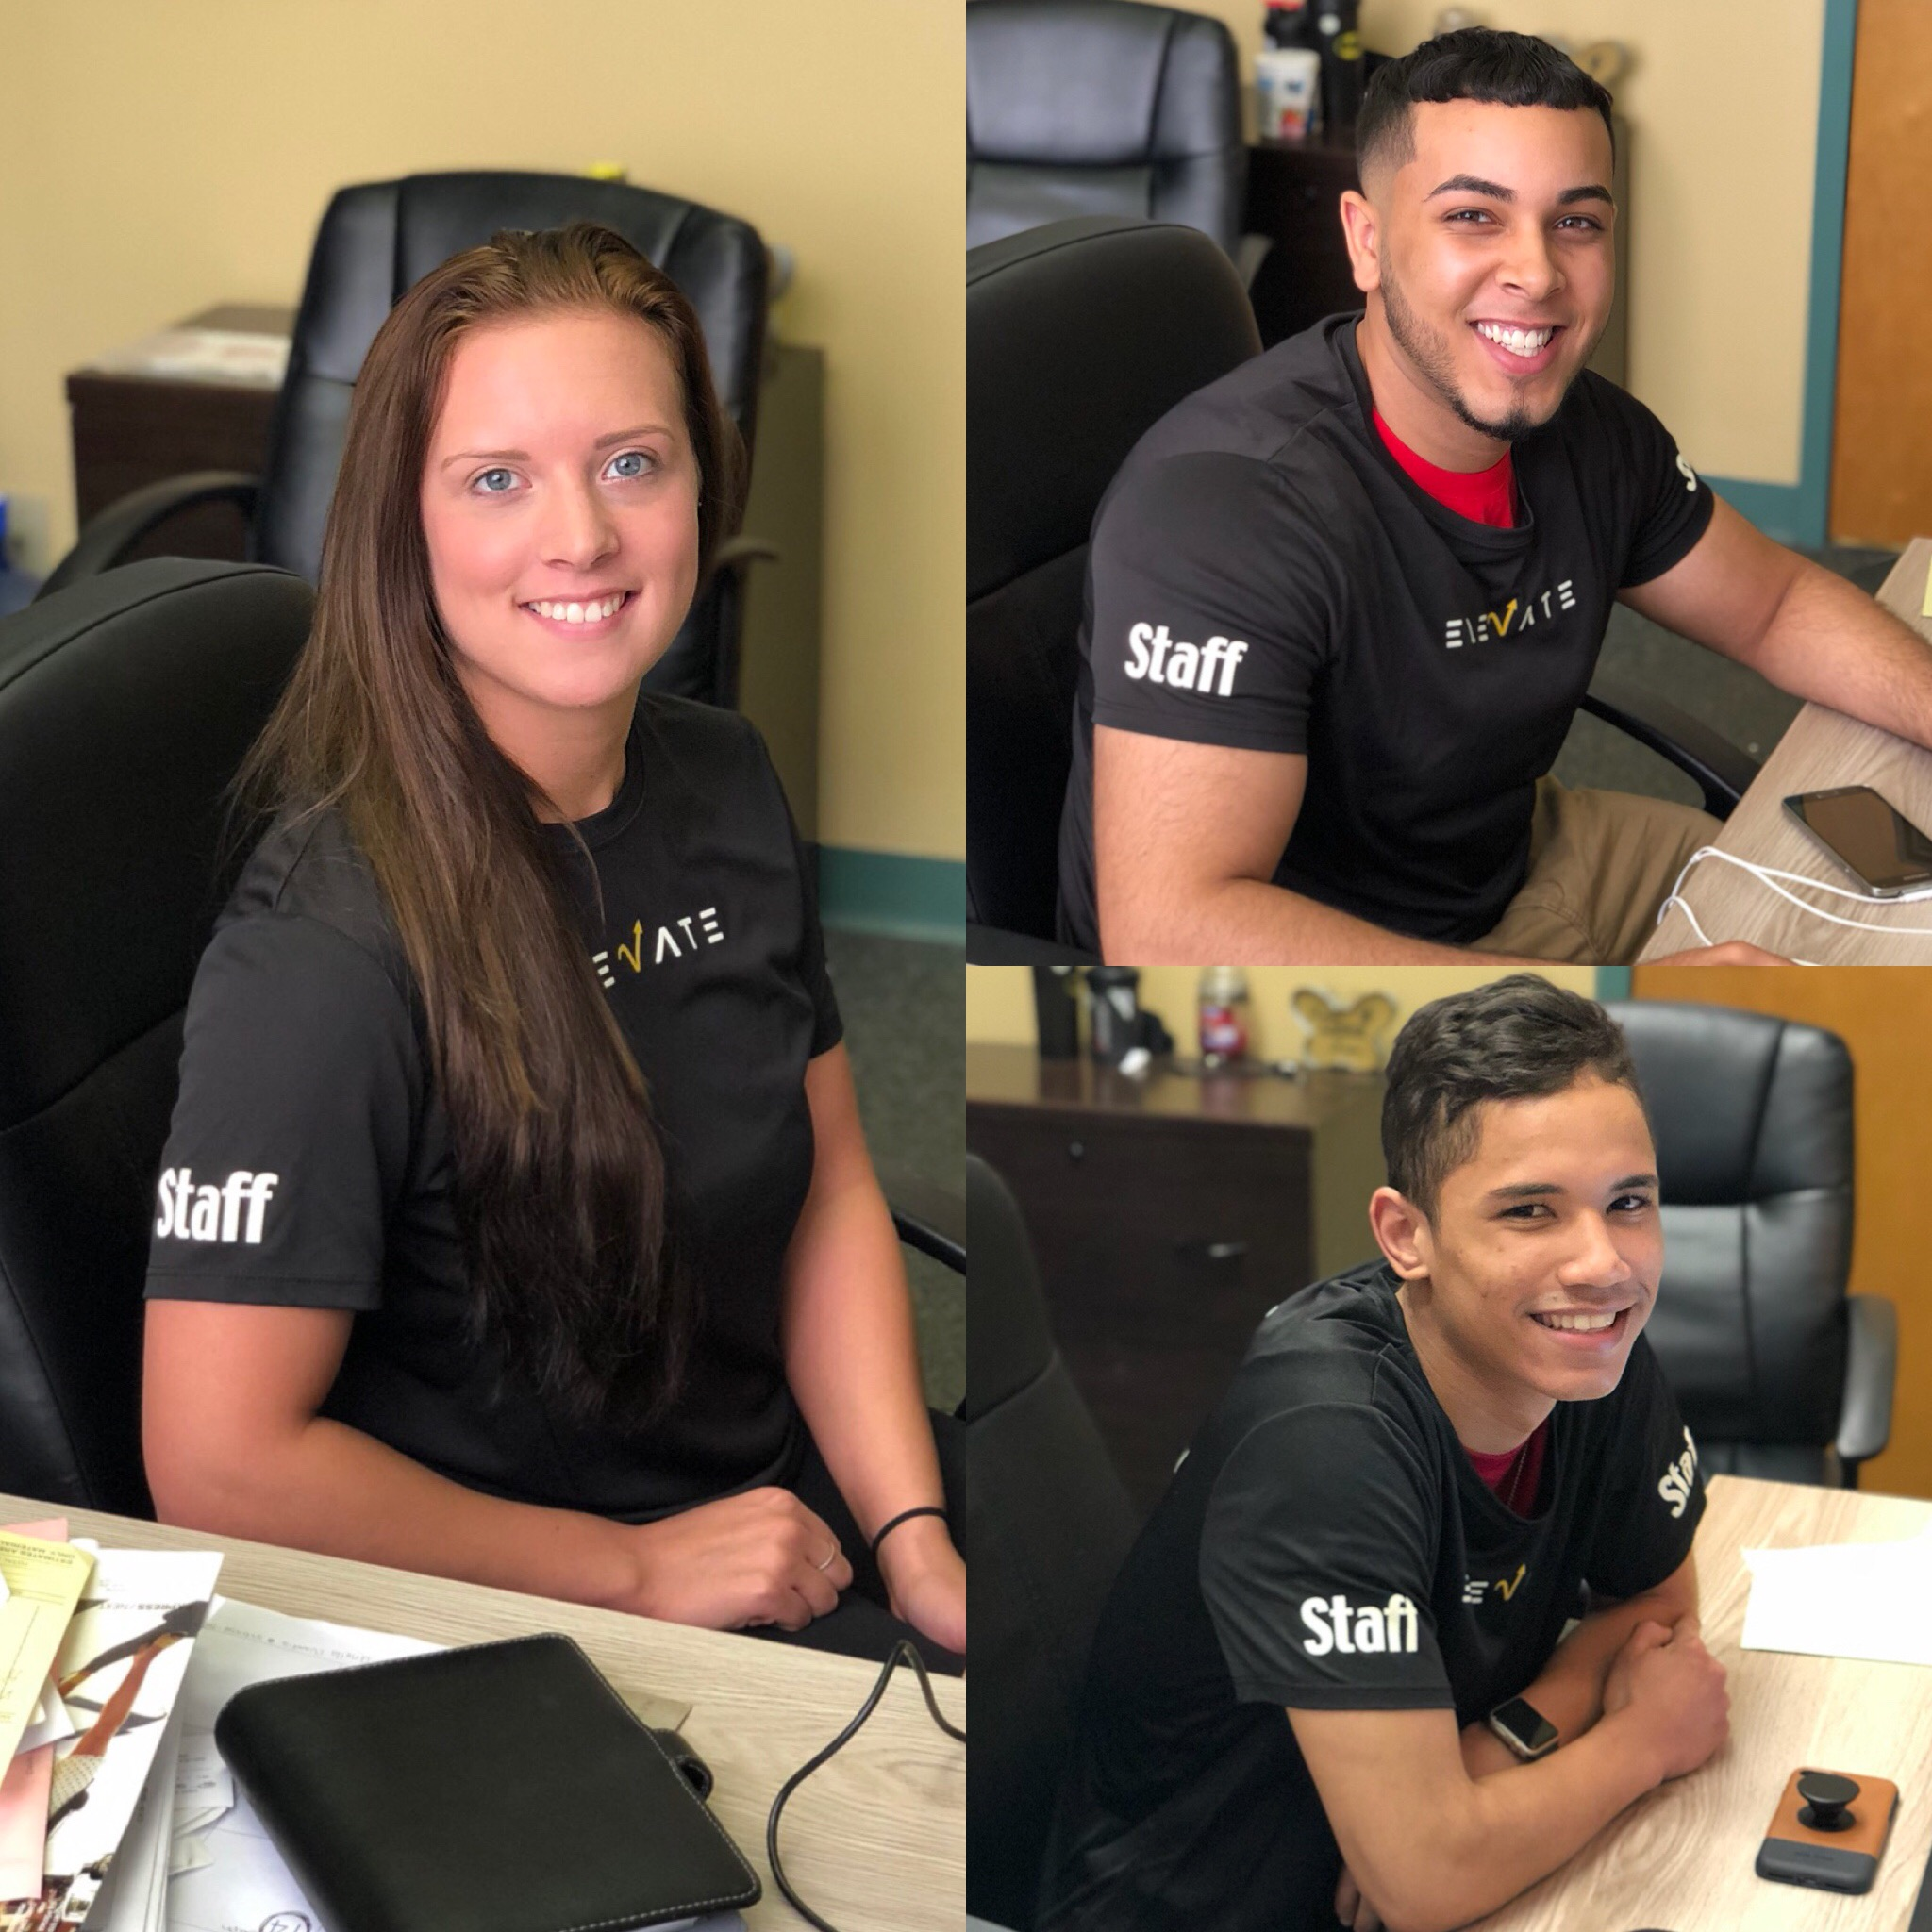 Our Member Services Representatives: Holly, Luis, & Joimy